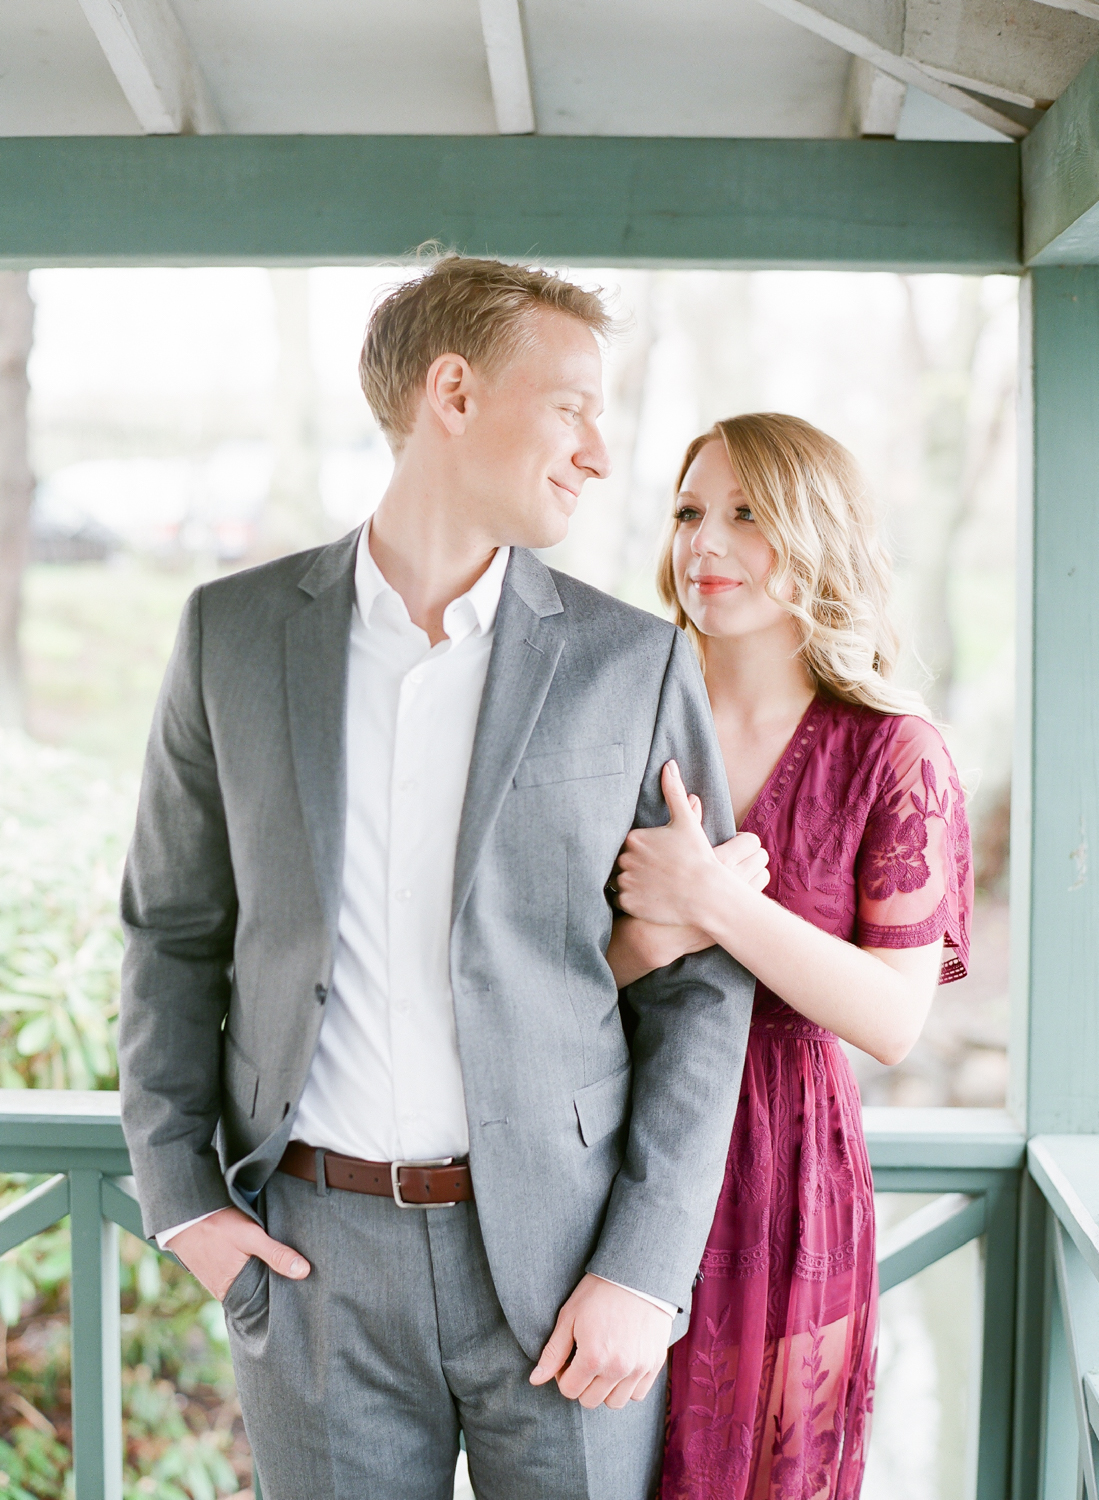 Jacqueline Anne Photography - Amanda and Brent-83.jpg